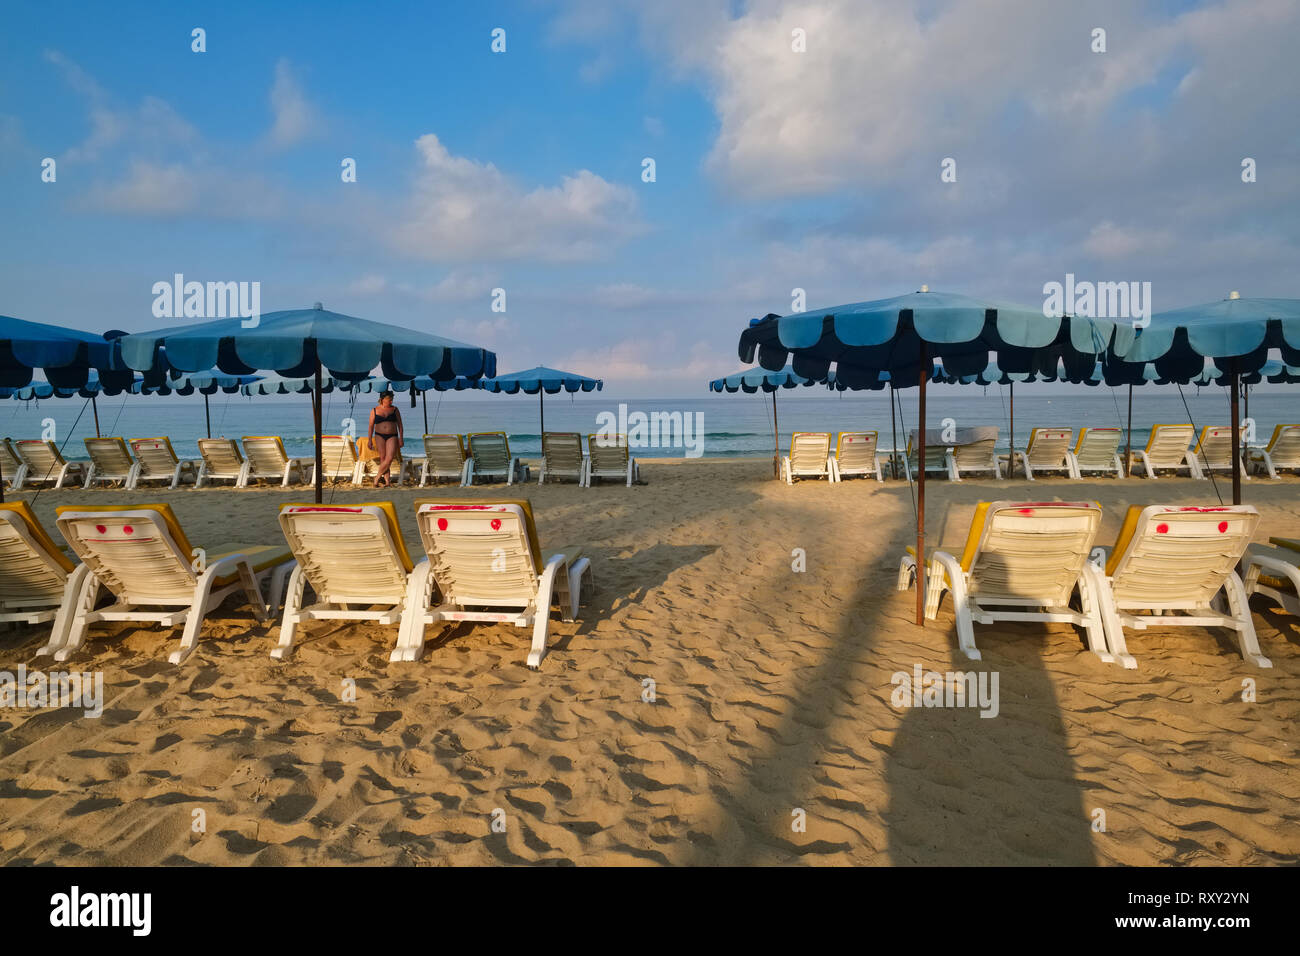 On an early morning, Karon Beach in Phuket, Thailand, with opened parasols and sun chairs lined up, is almost empty, save for a lone woman in the b/g - Stock Image